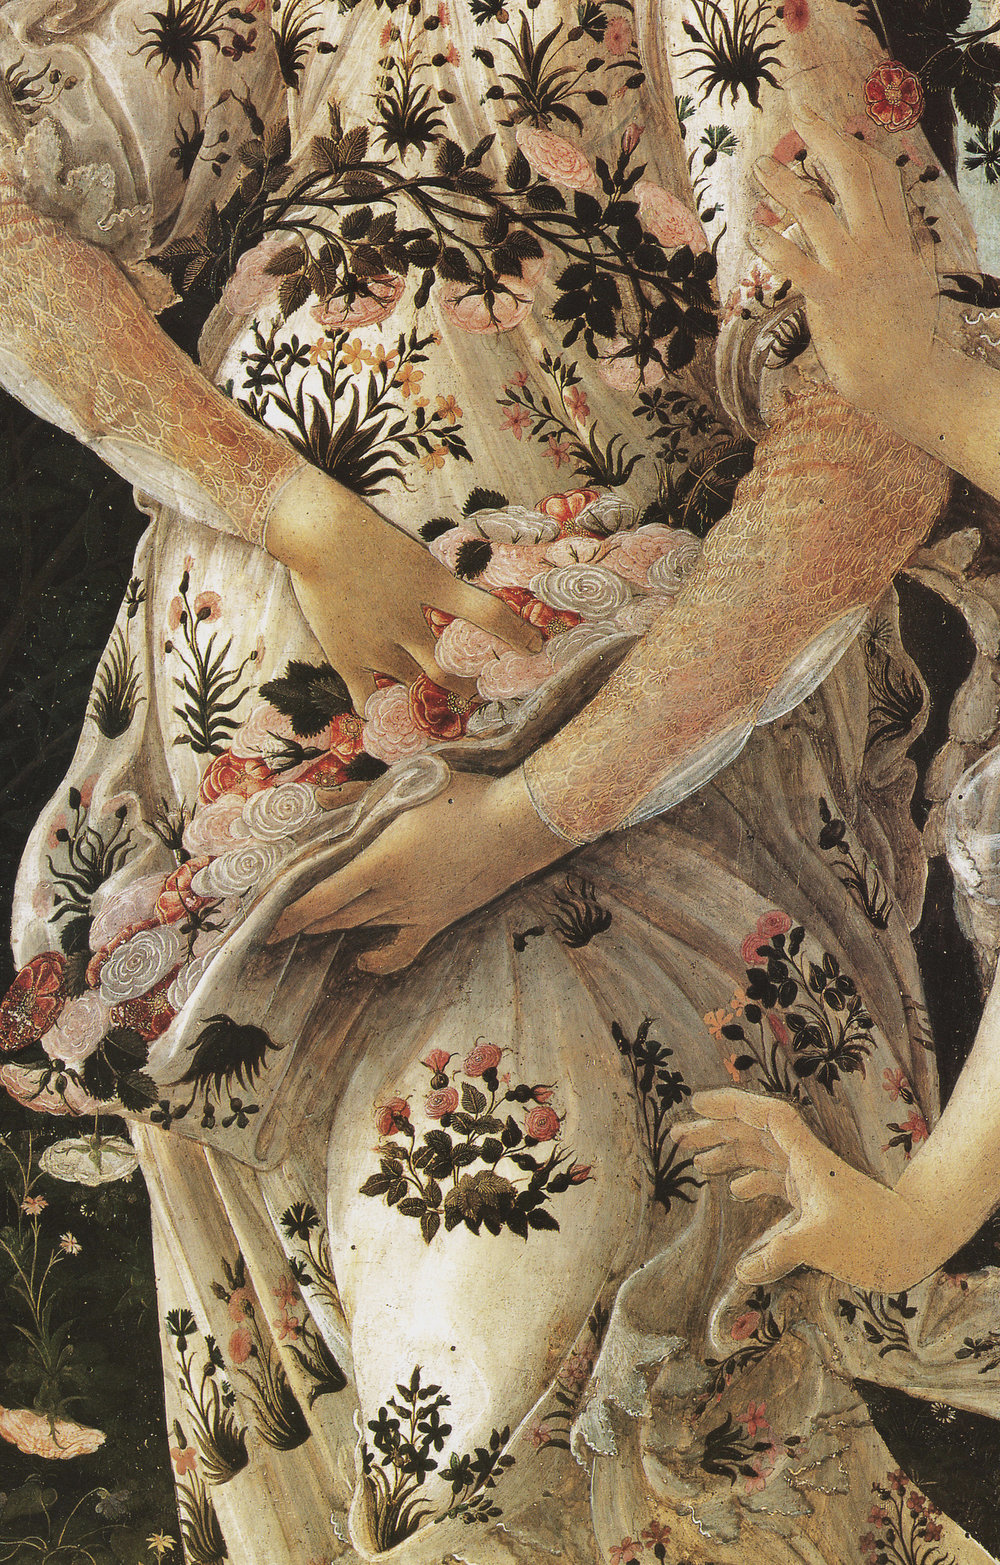 Detail of Sandro Boticelli's  Primavera   Source